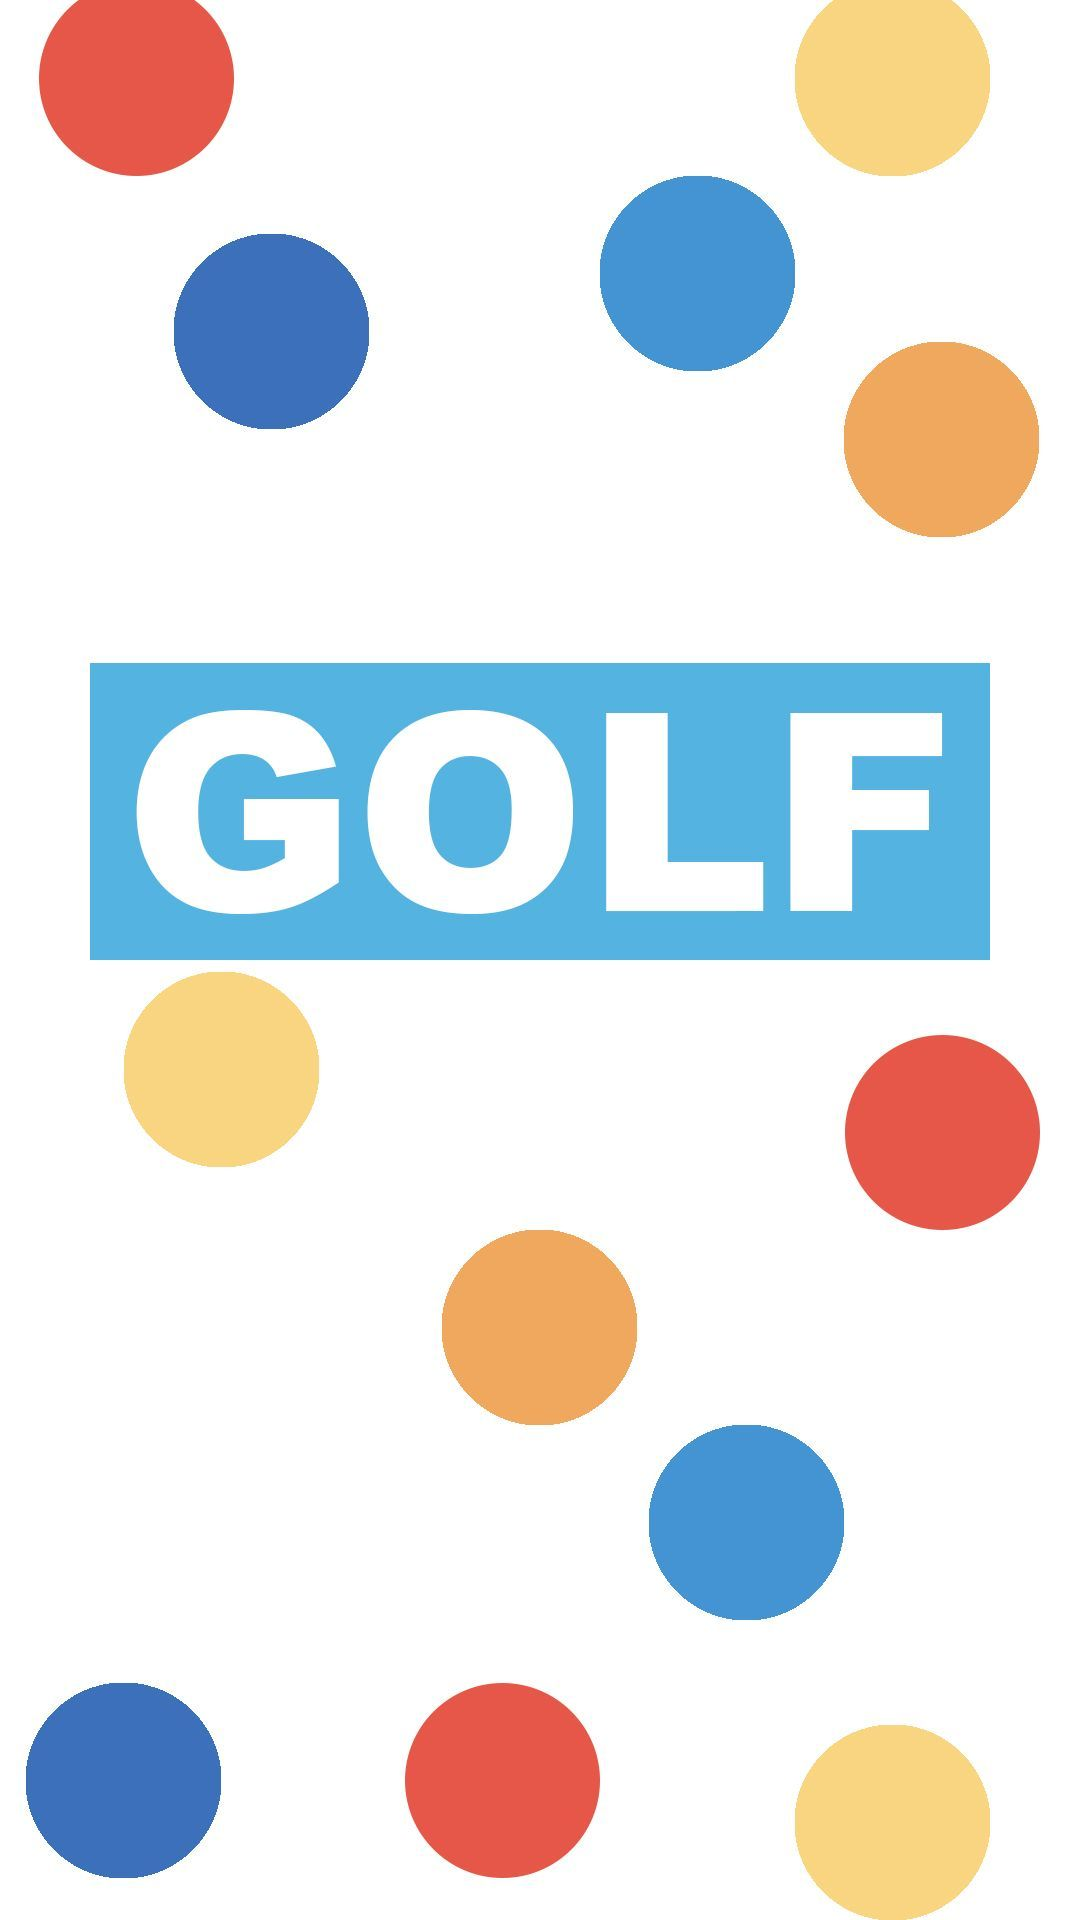 1080x1920 Golf Wang Wallpapers Golf Wang Hd Wallpaper Android Tyler The Creator Wallpaper